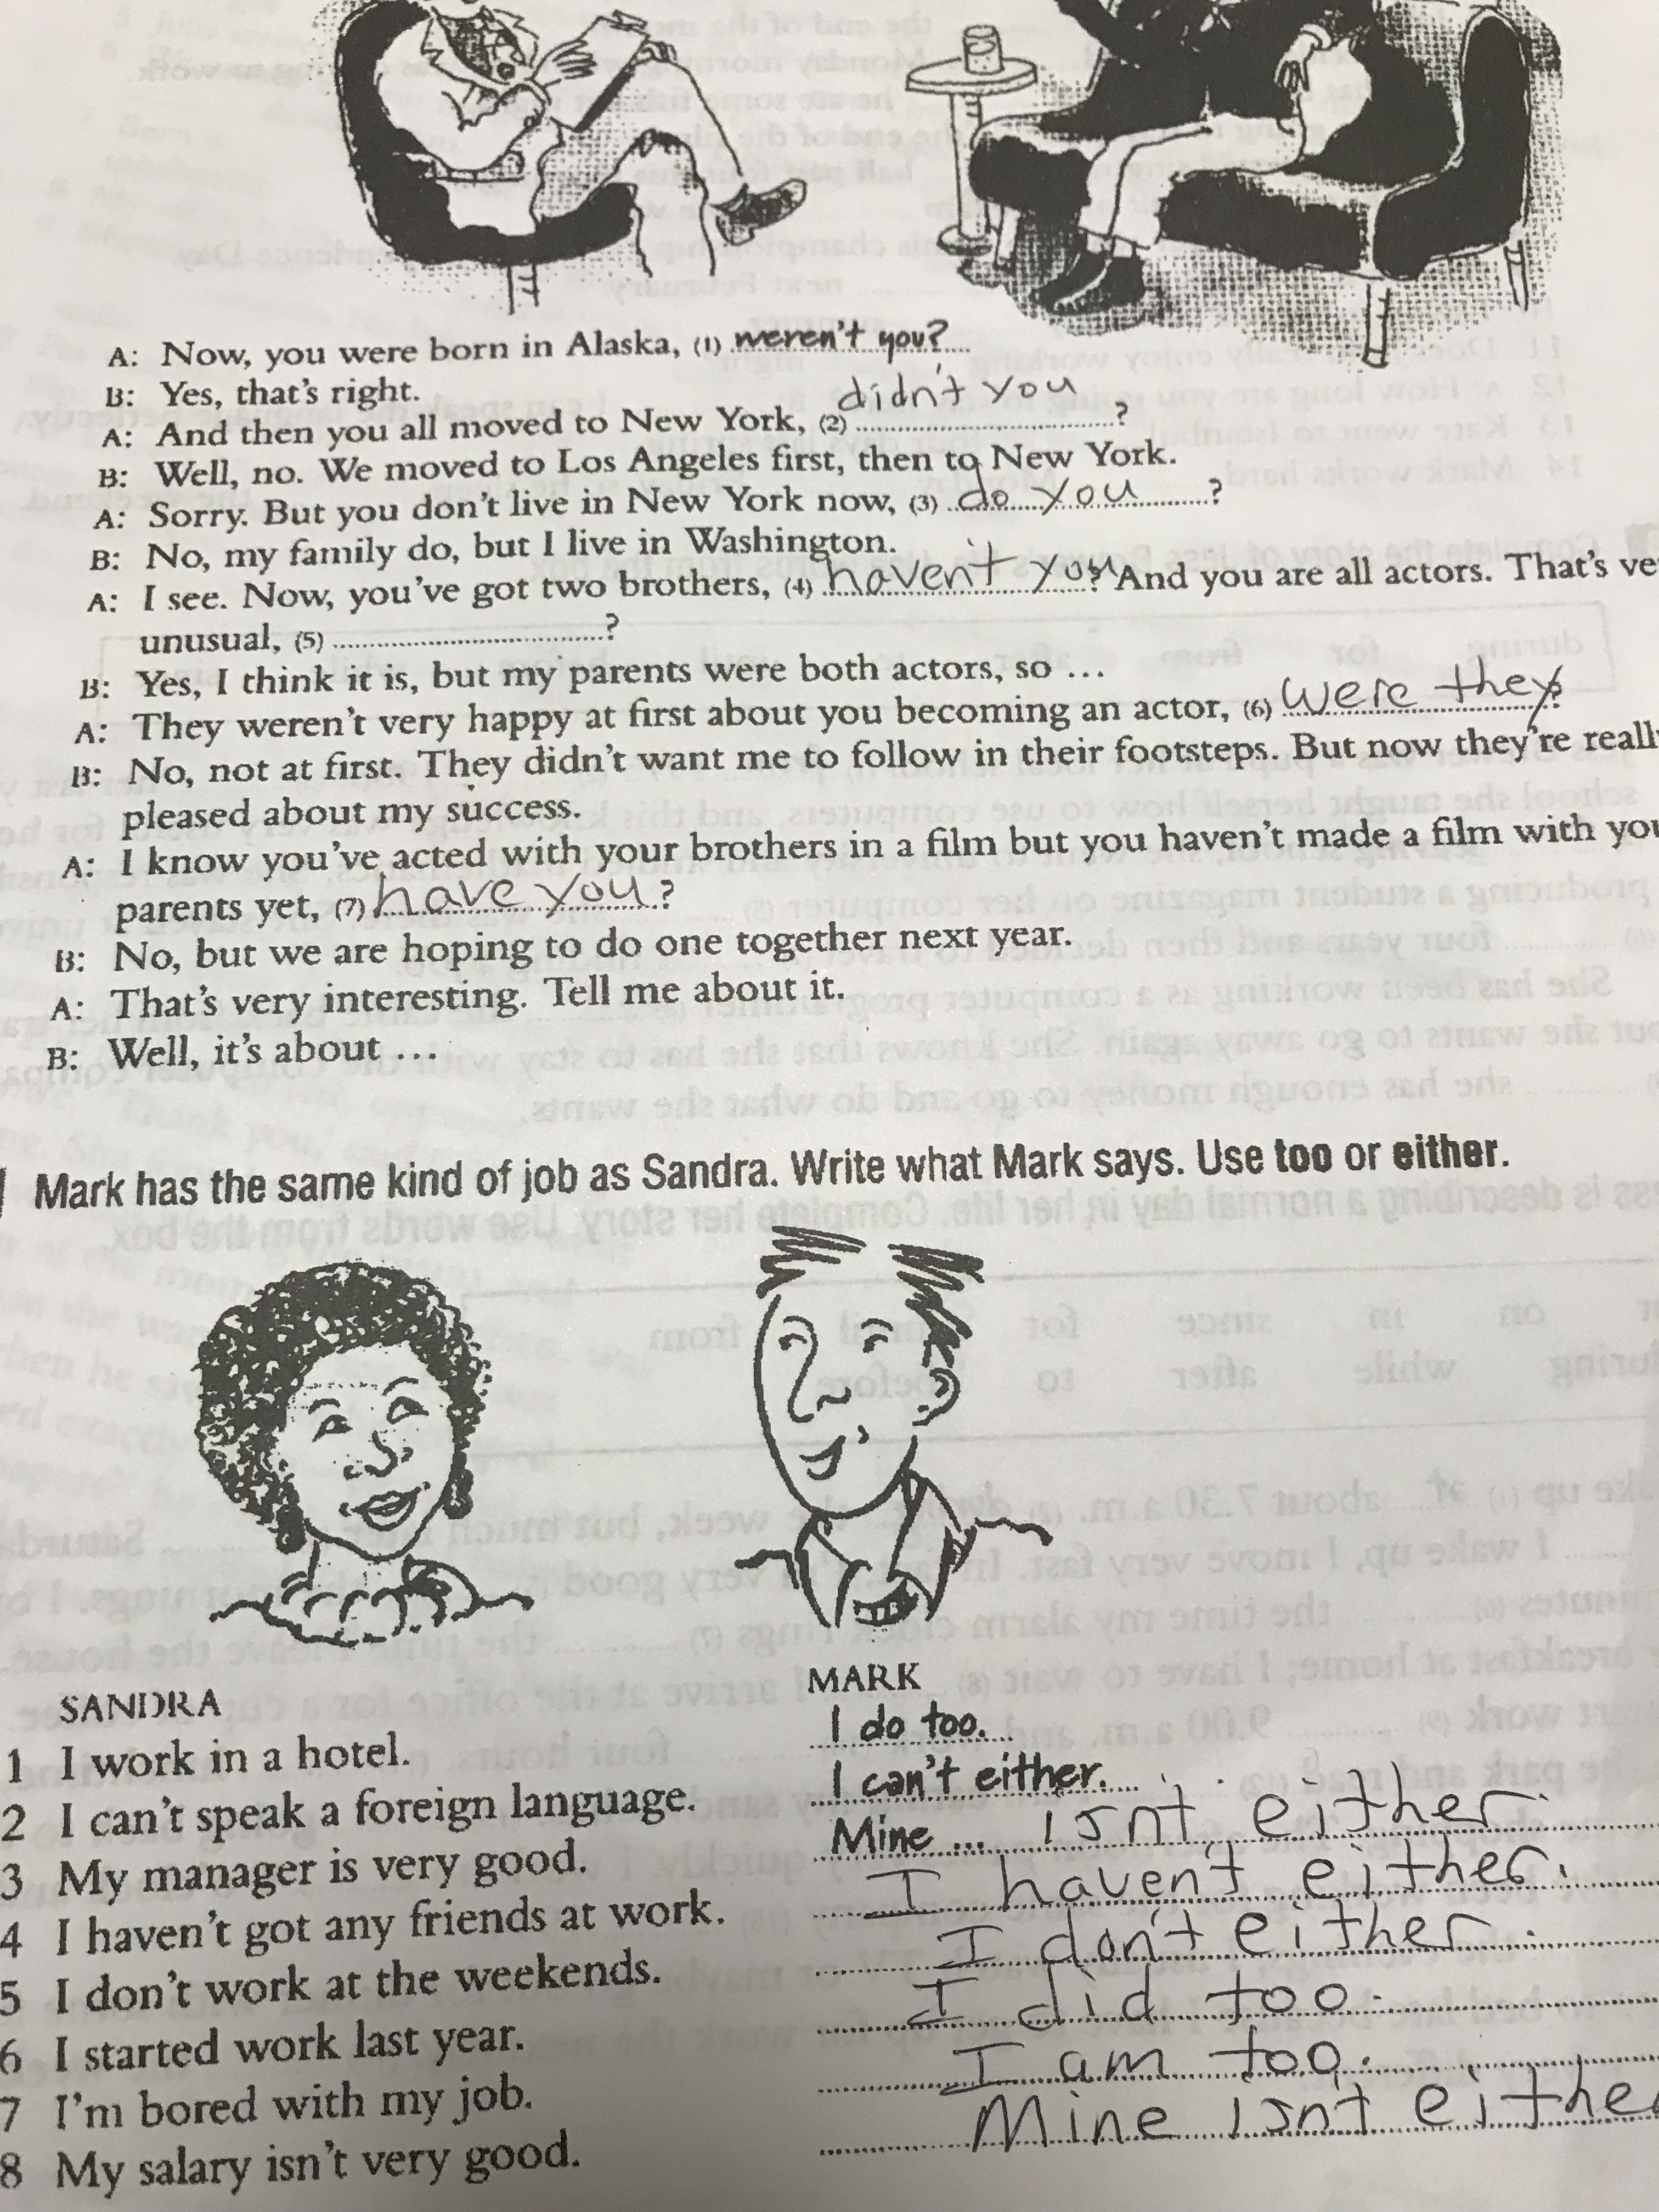 Worksheet Answers For Page 52 And 26